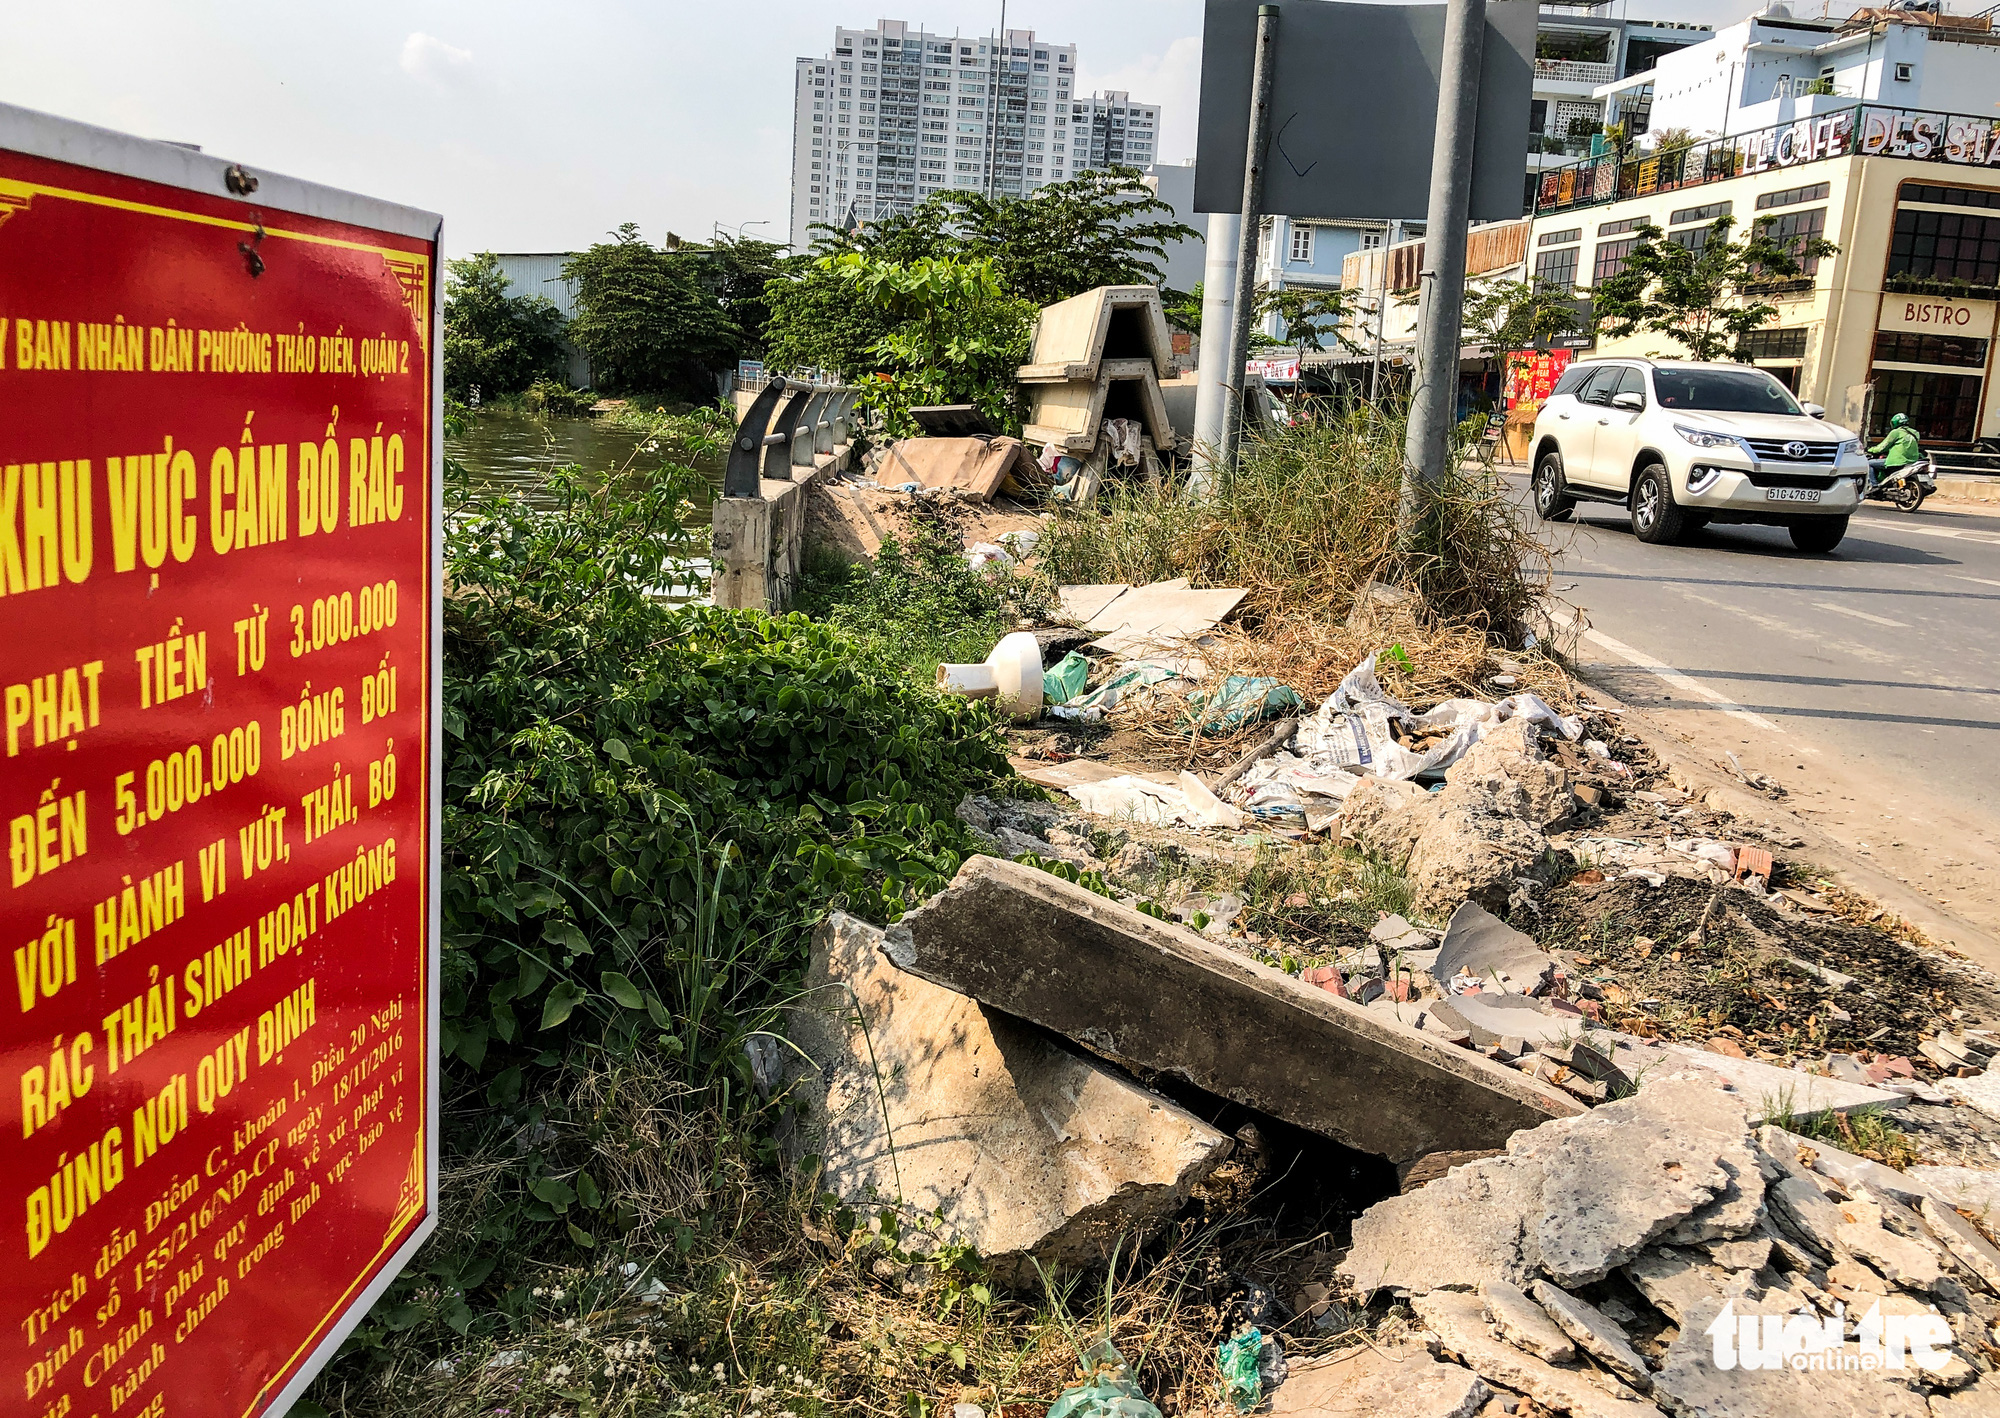 Construction waste is dumped next to a sign for banning dumping in Ho Chi Minh City. Photo: Kim Ut / Tuoi Tre